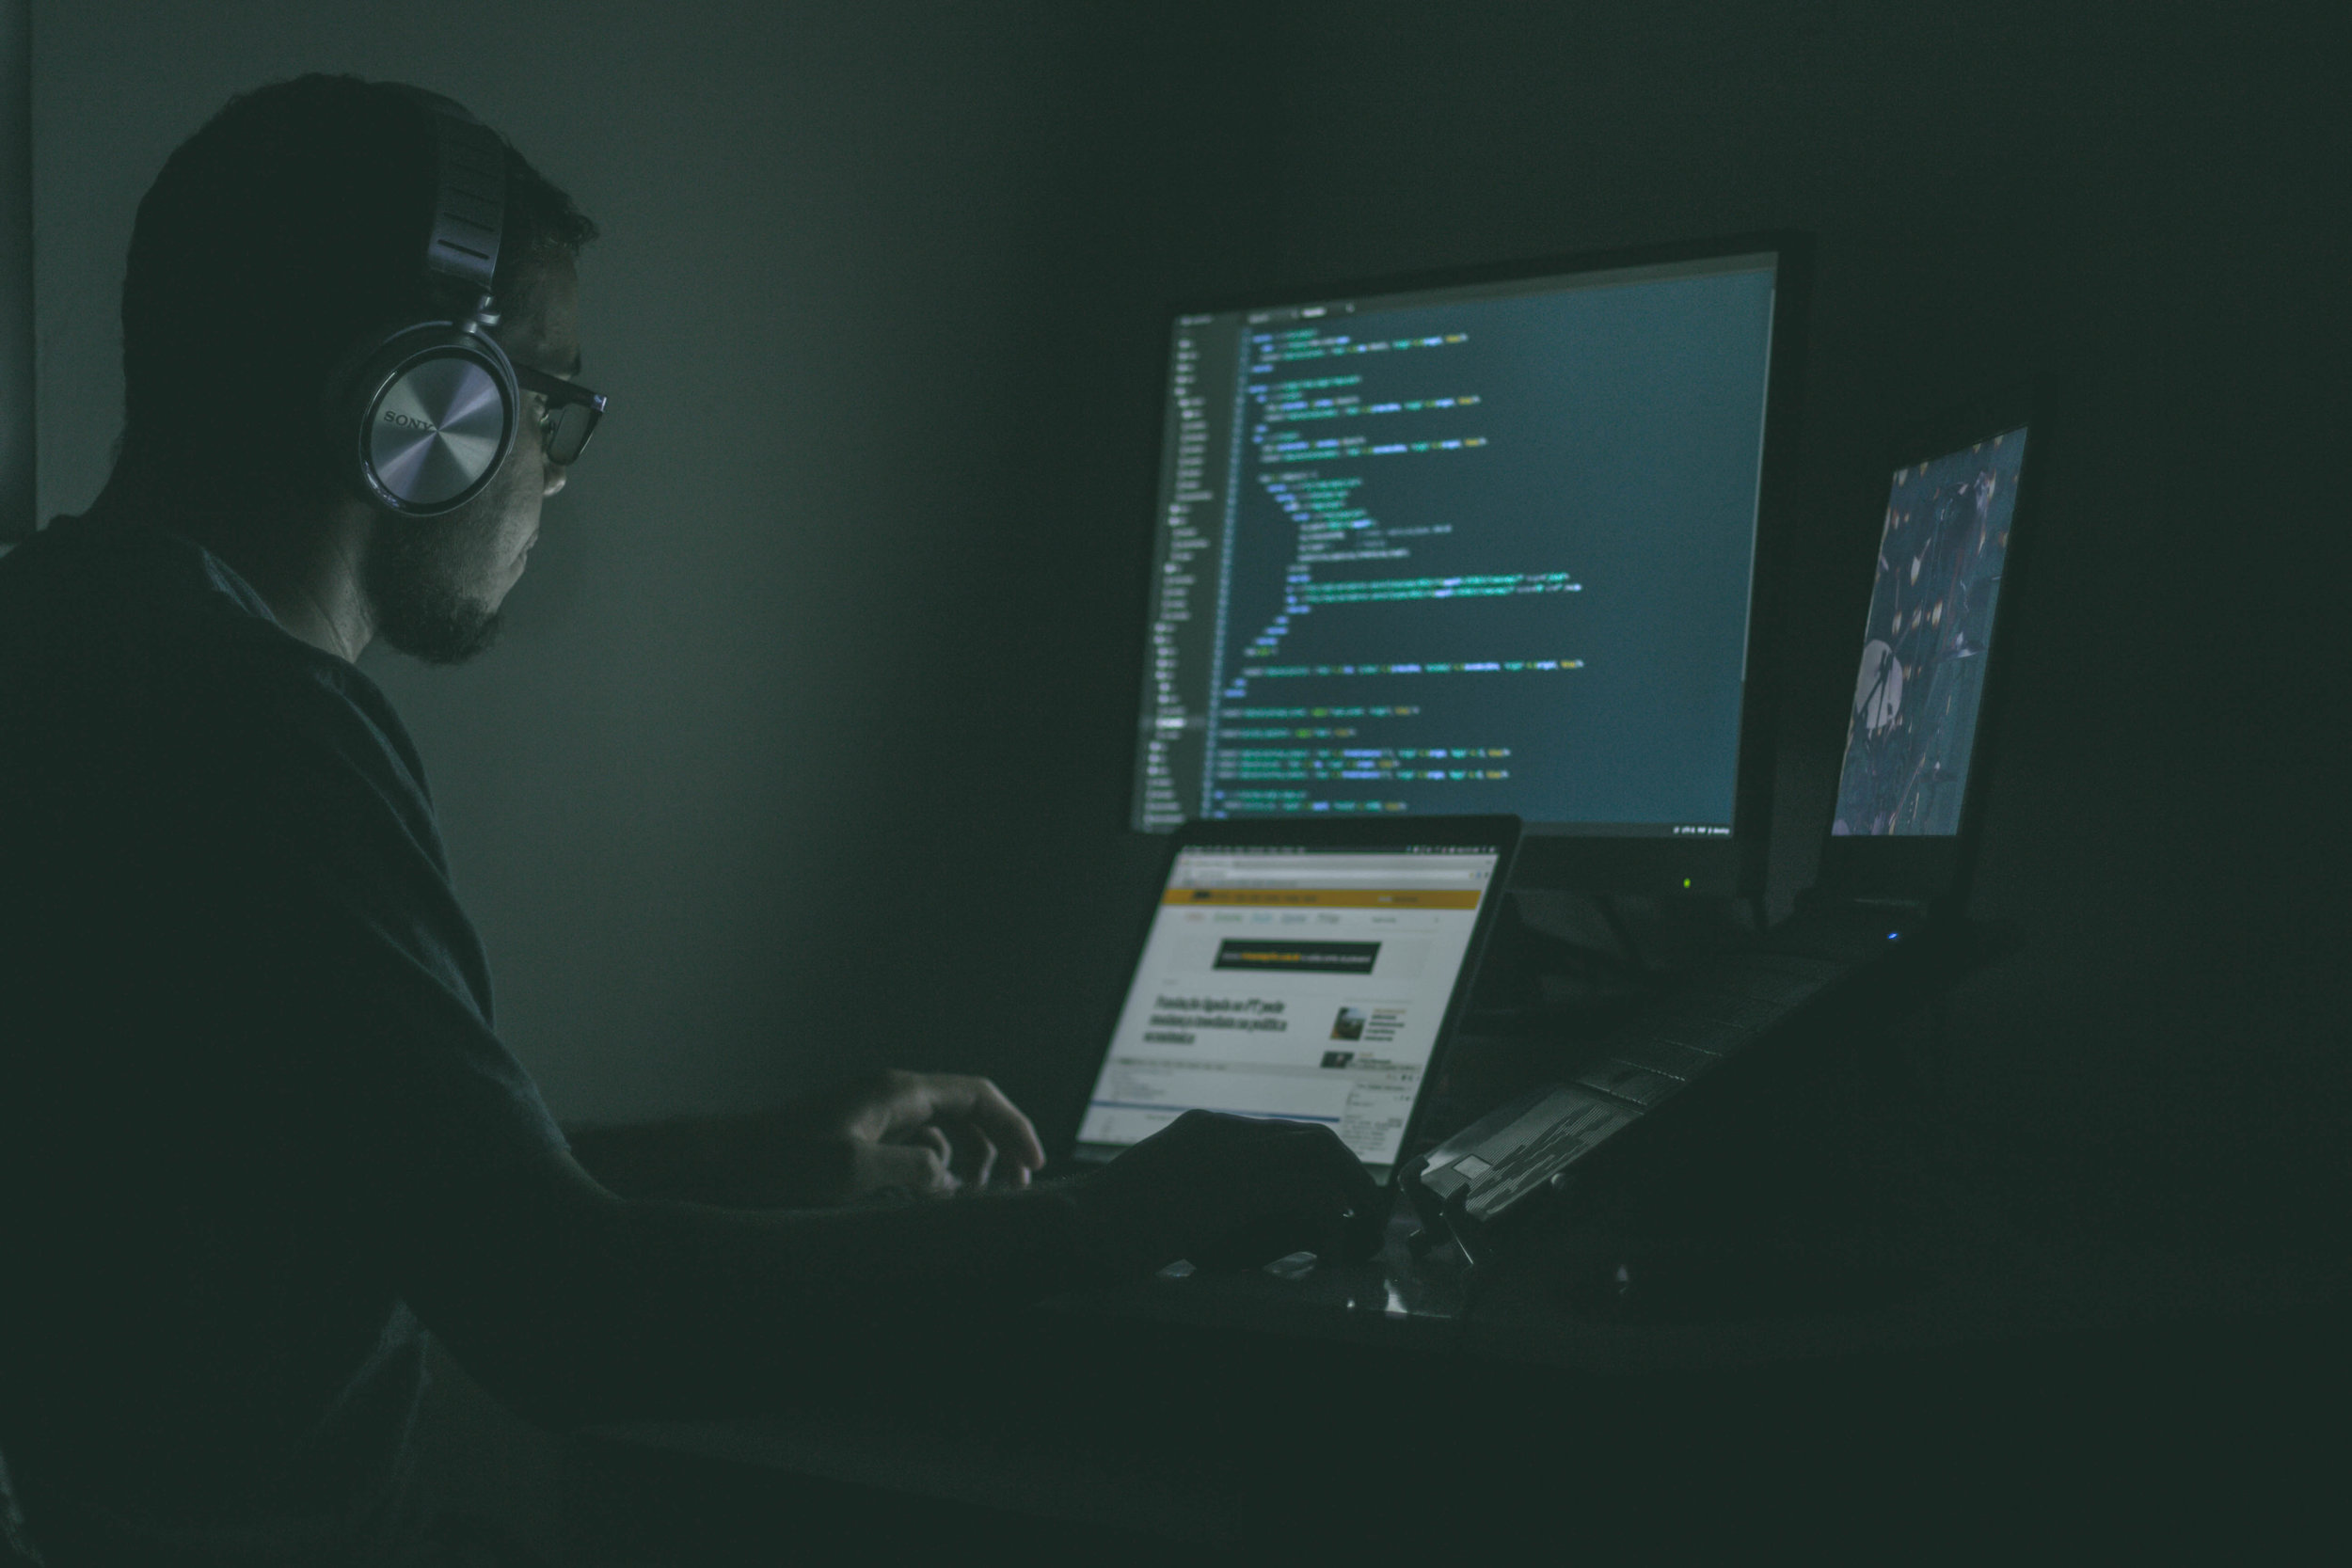 Special Projects - The beauty of Magento lies in the ability to build special features unique to the client's needs and goals. Many of these features built have lead to rapid growth and expansion- something we always love to see!